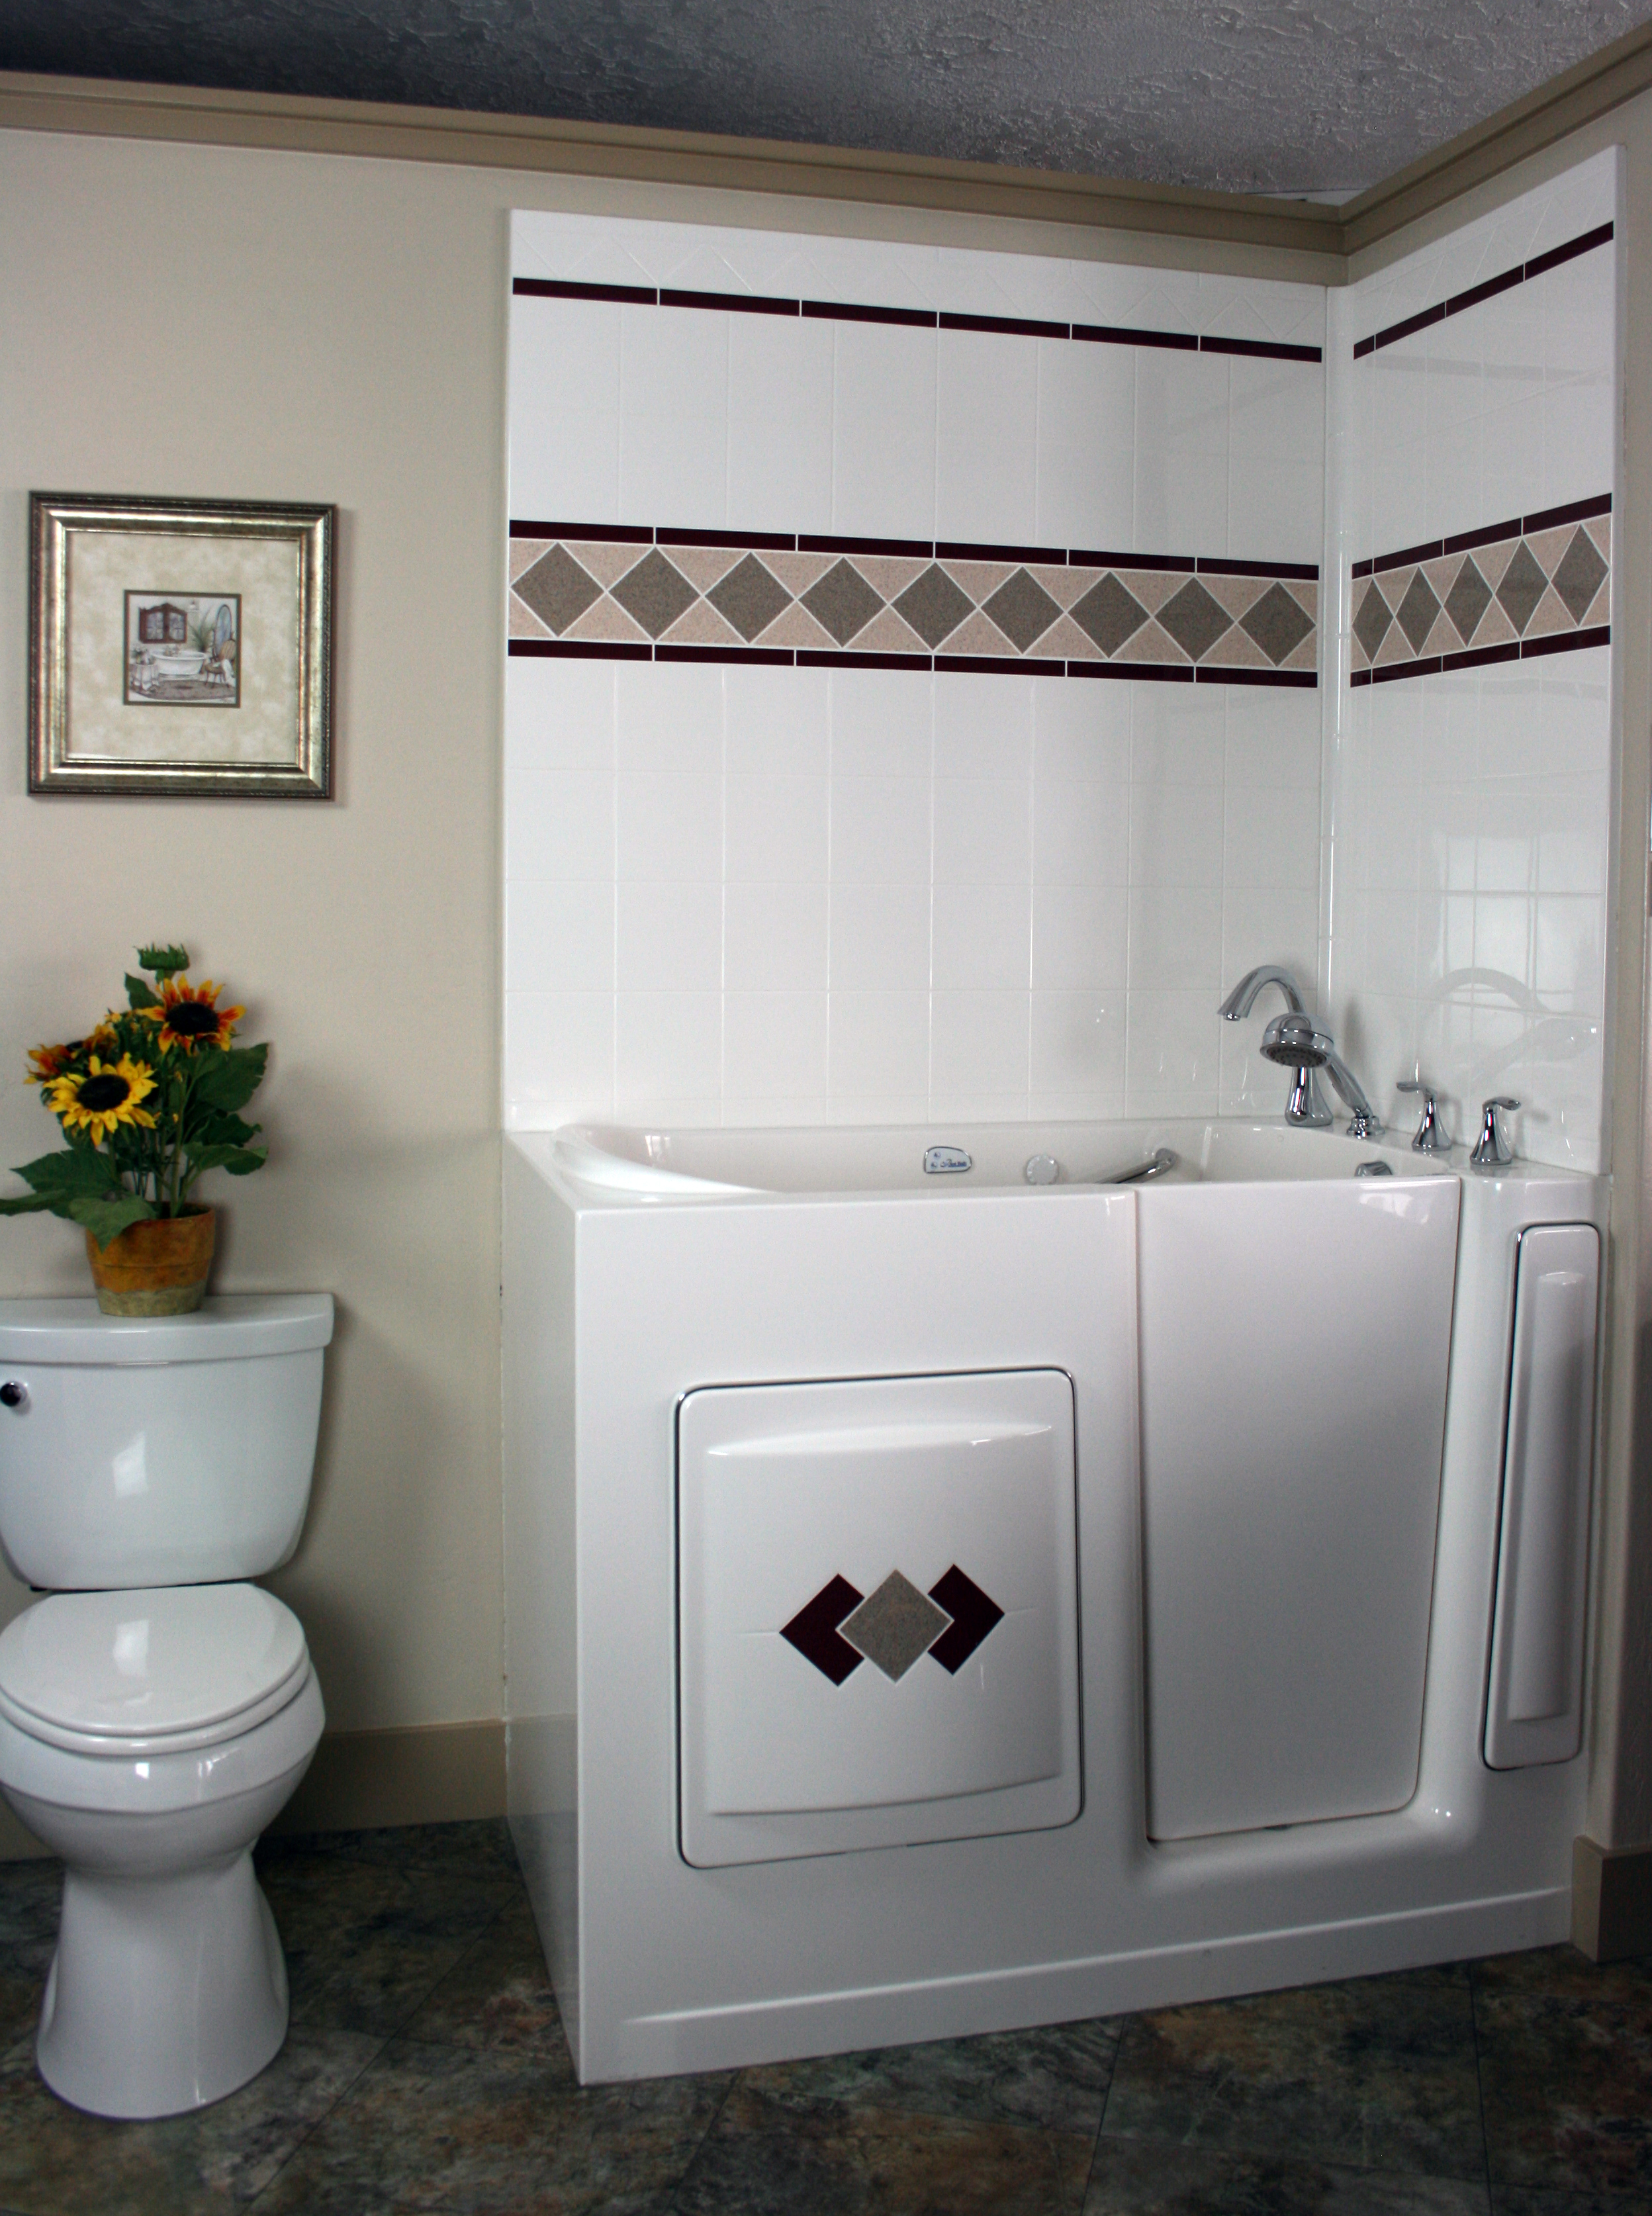 Walk In Tubs Denver - Handicap Bathtub - Handicap Accessible Shower